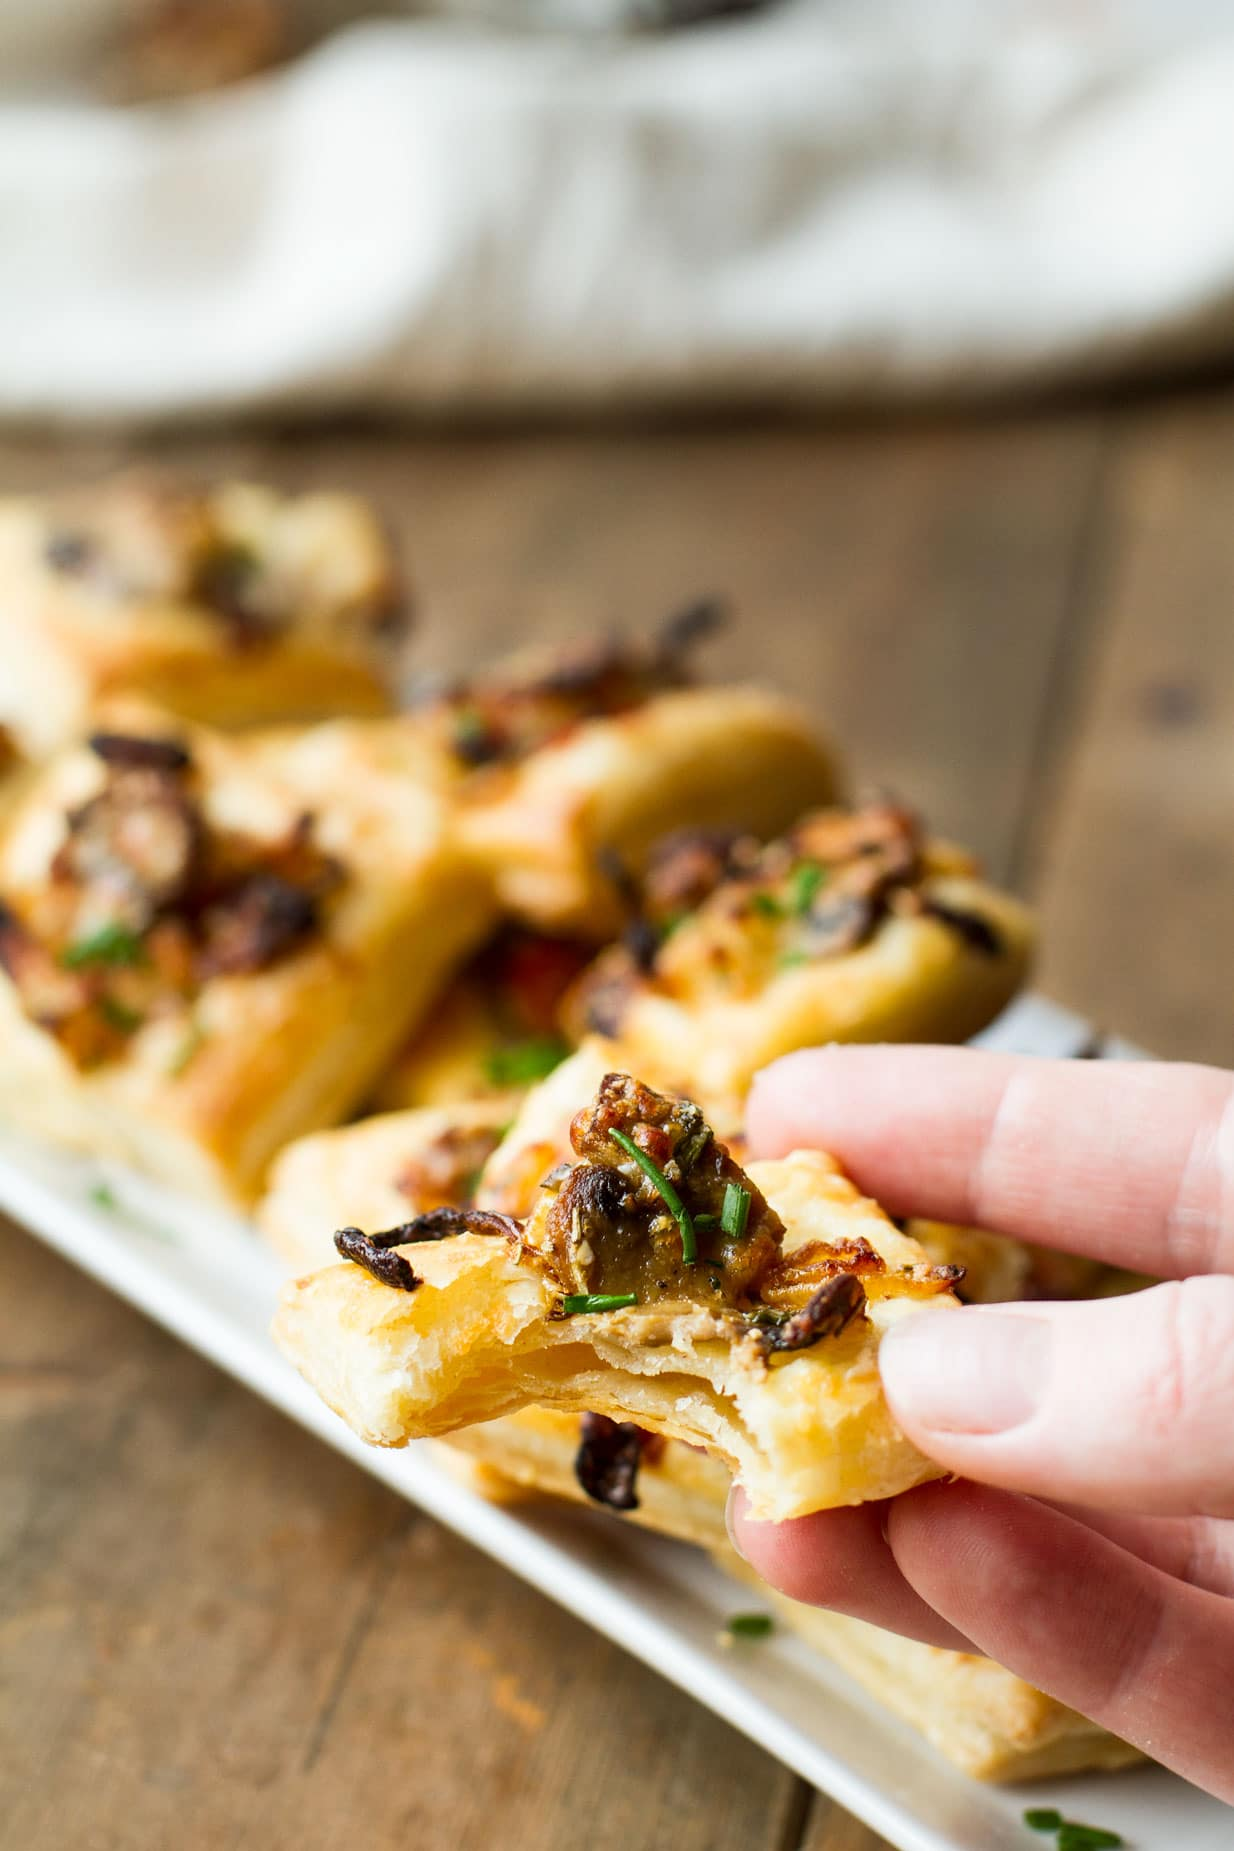 Caramelized Onion, Mushroom and Apple Puffs